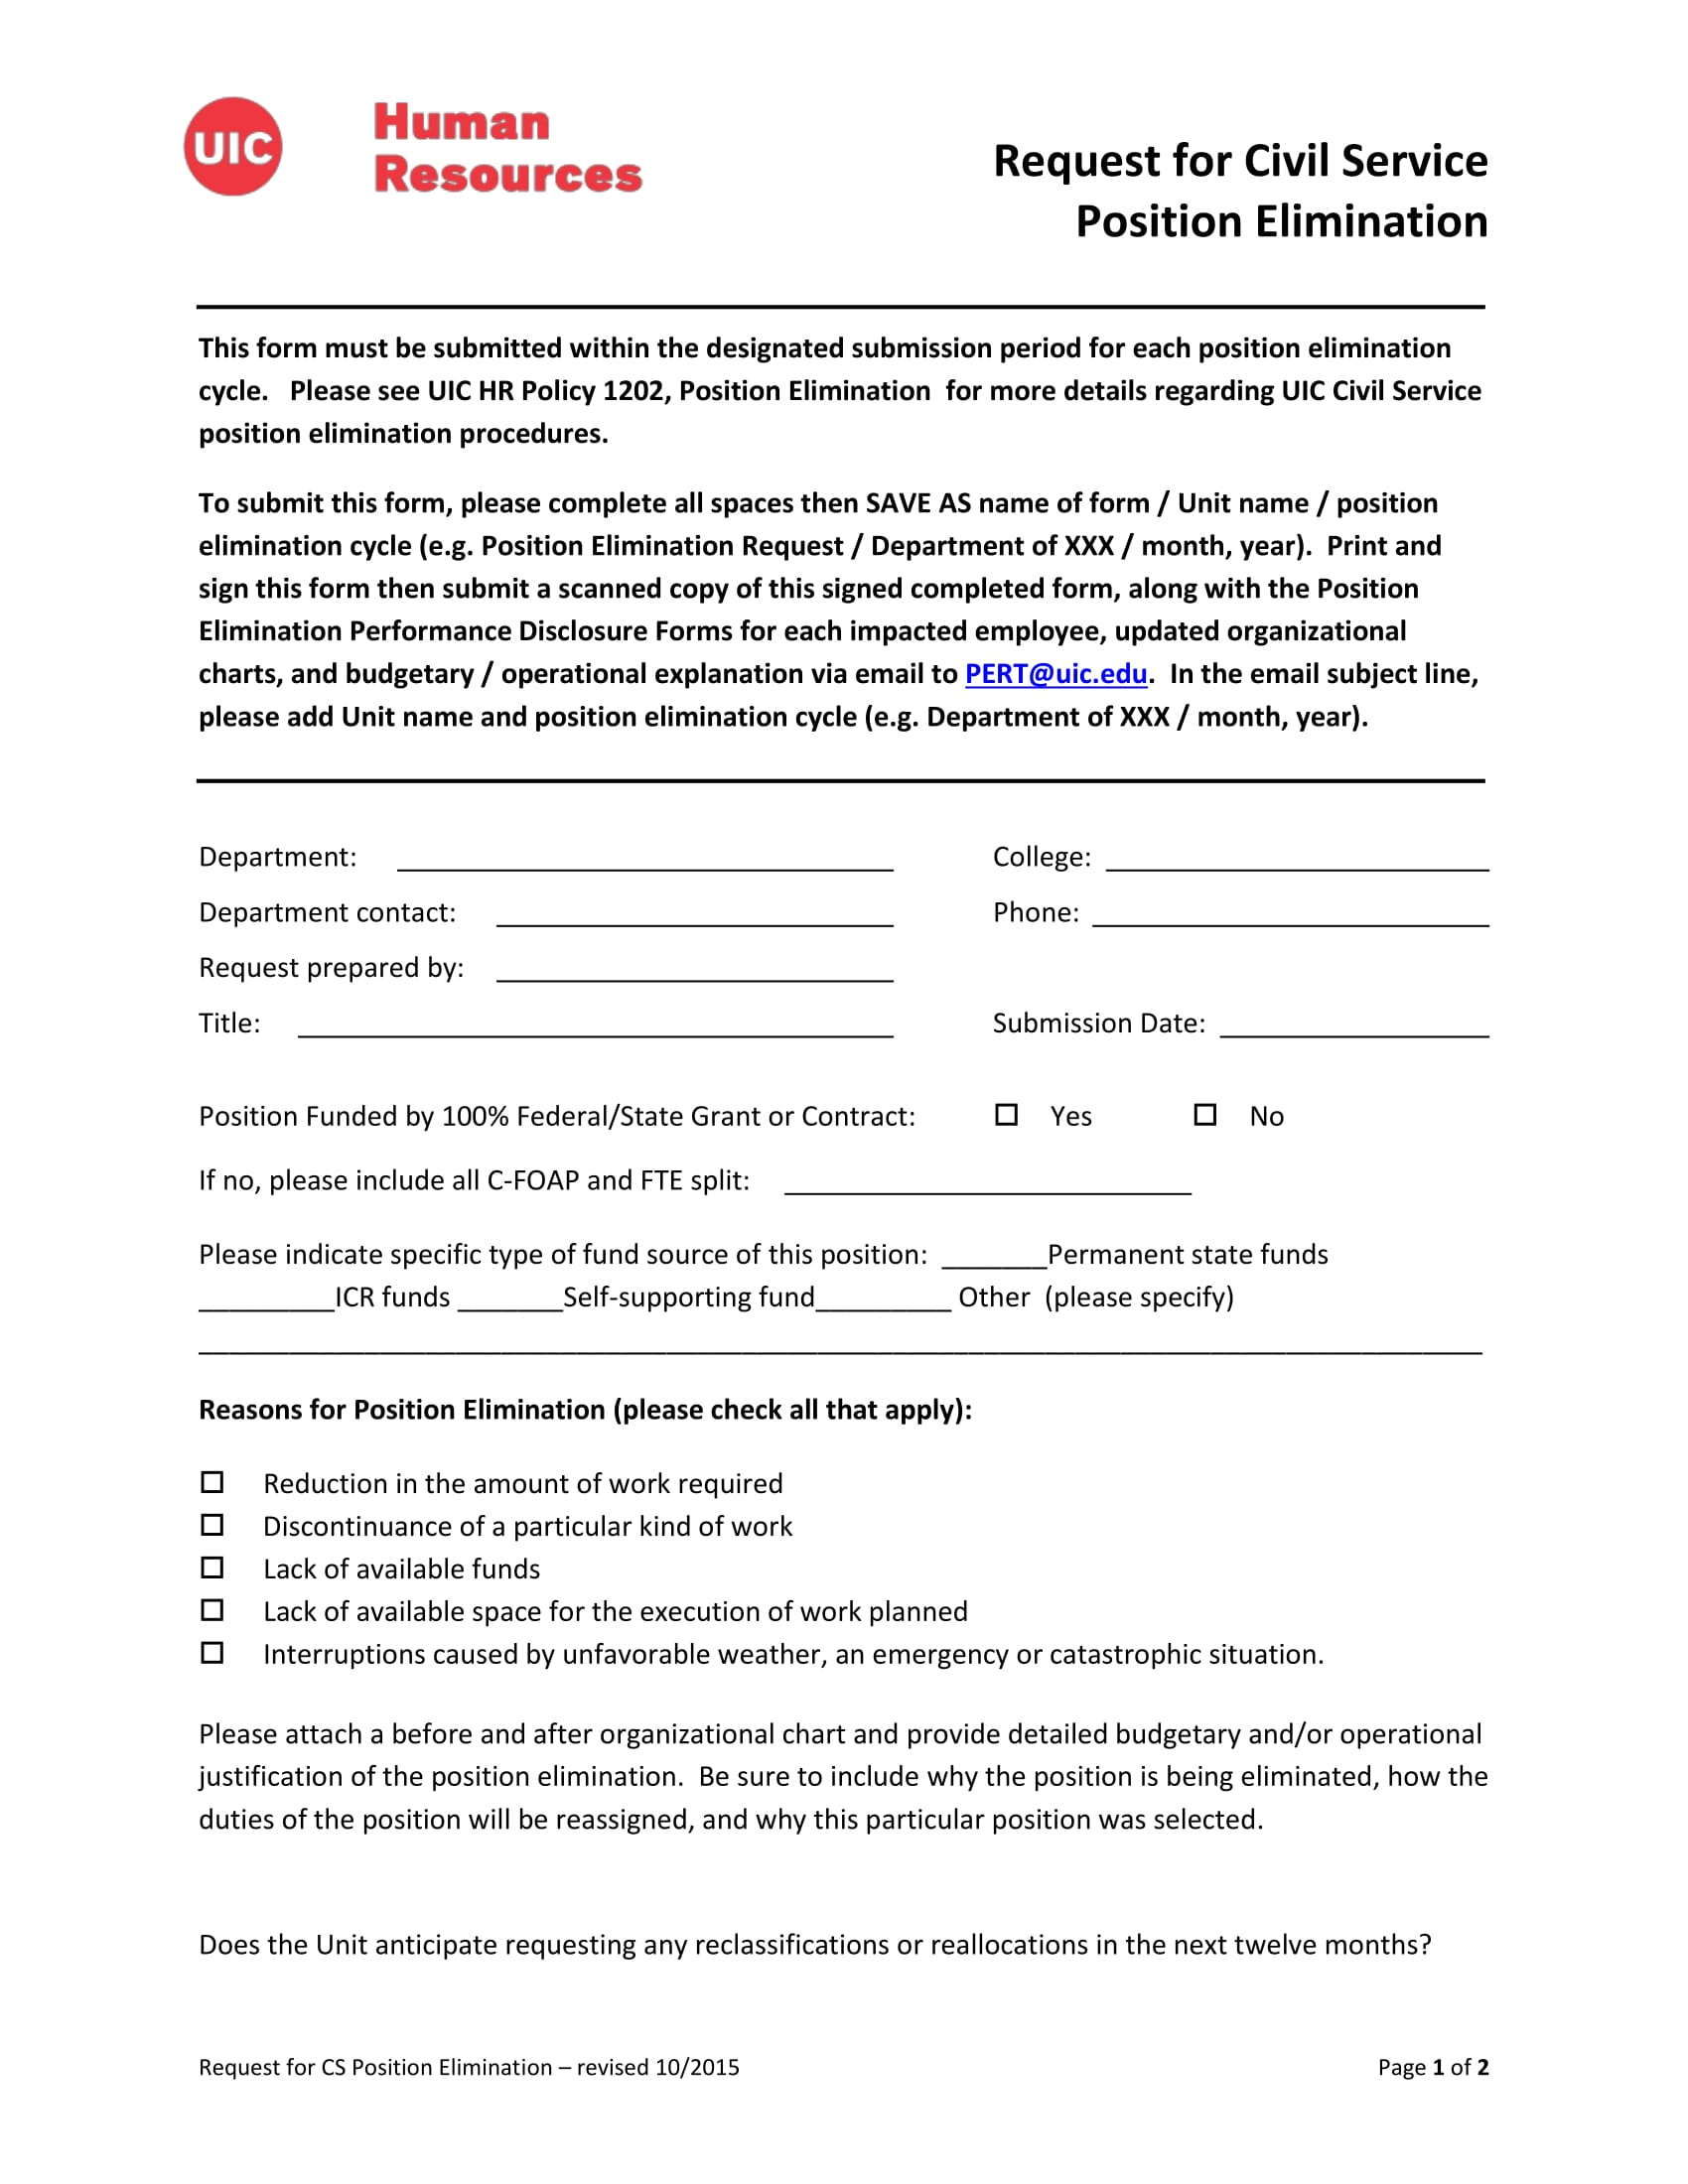 position elimination request form 1